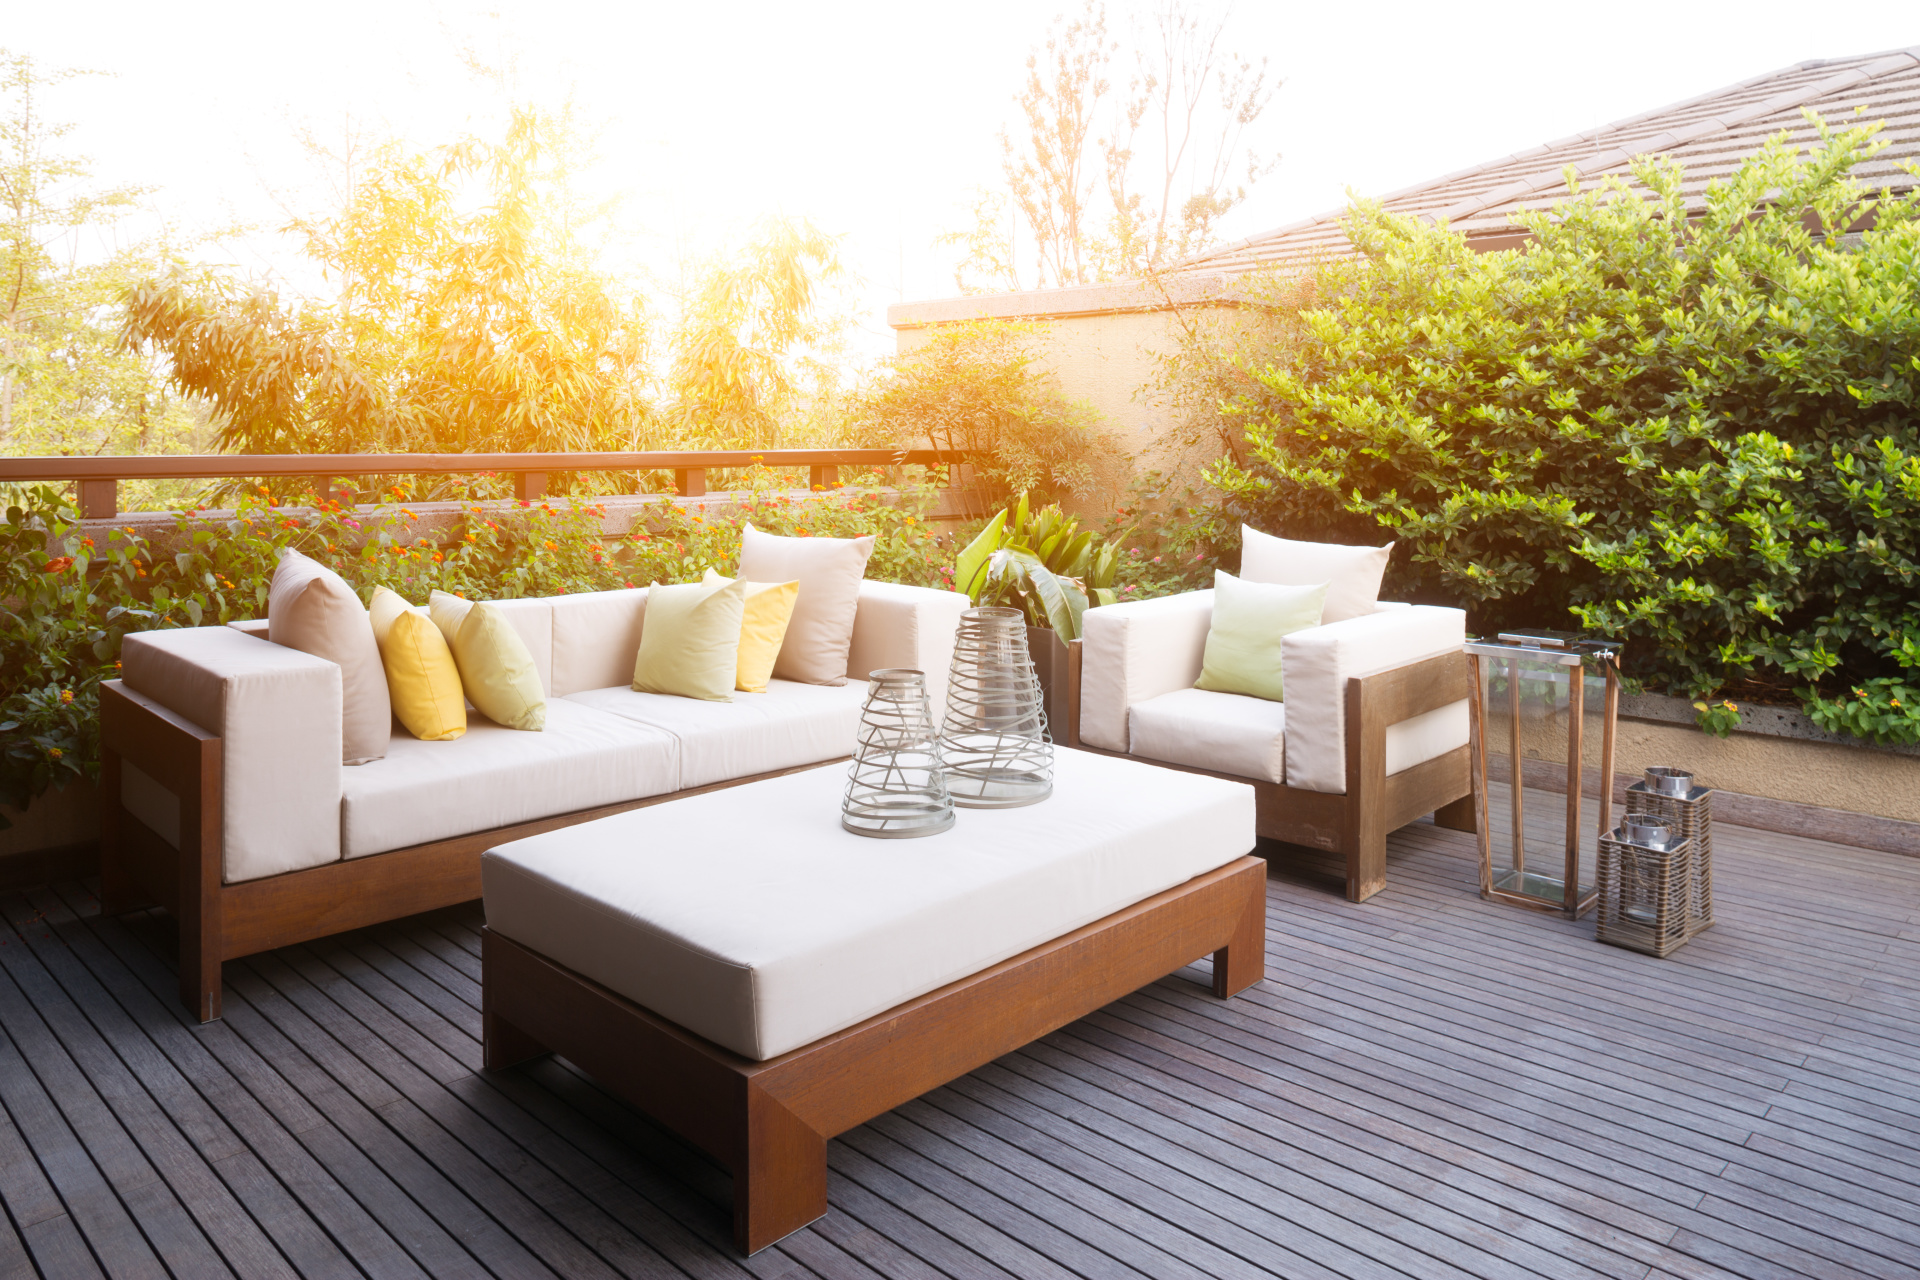 Outdoor Living, Outdoor Patio Furniture